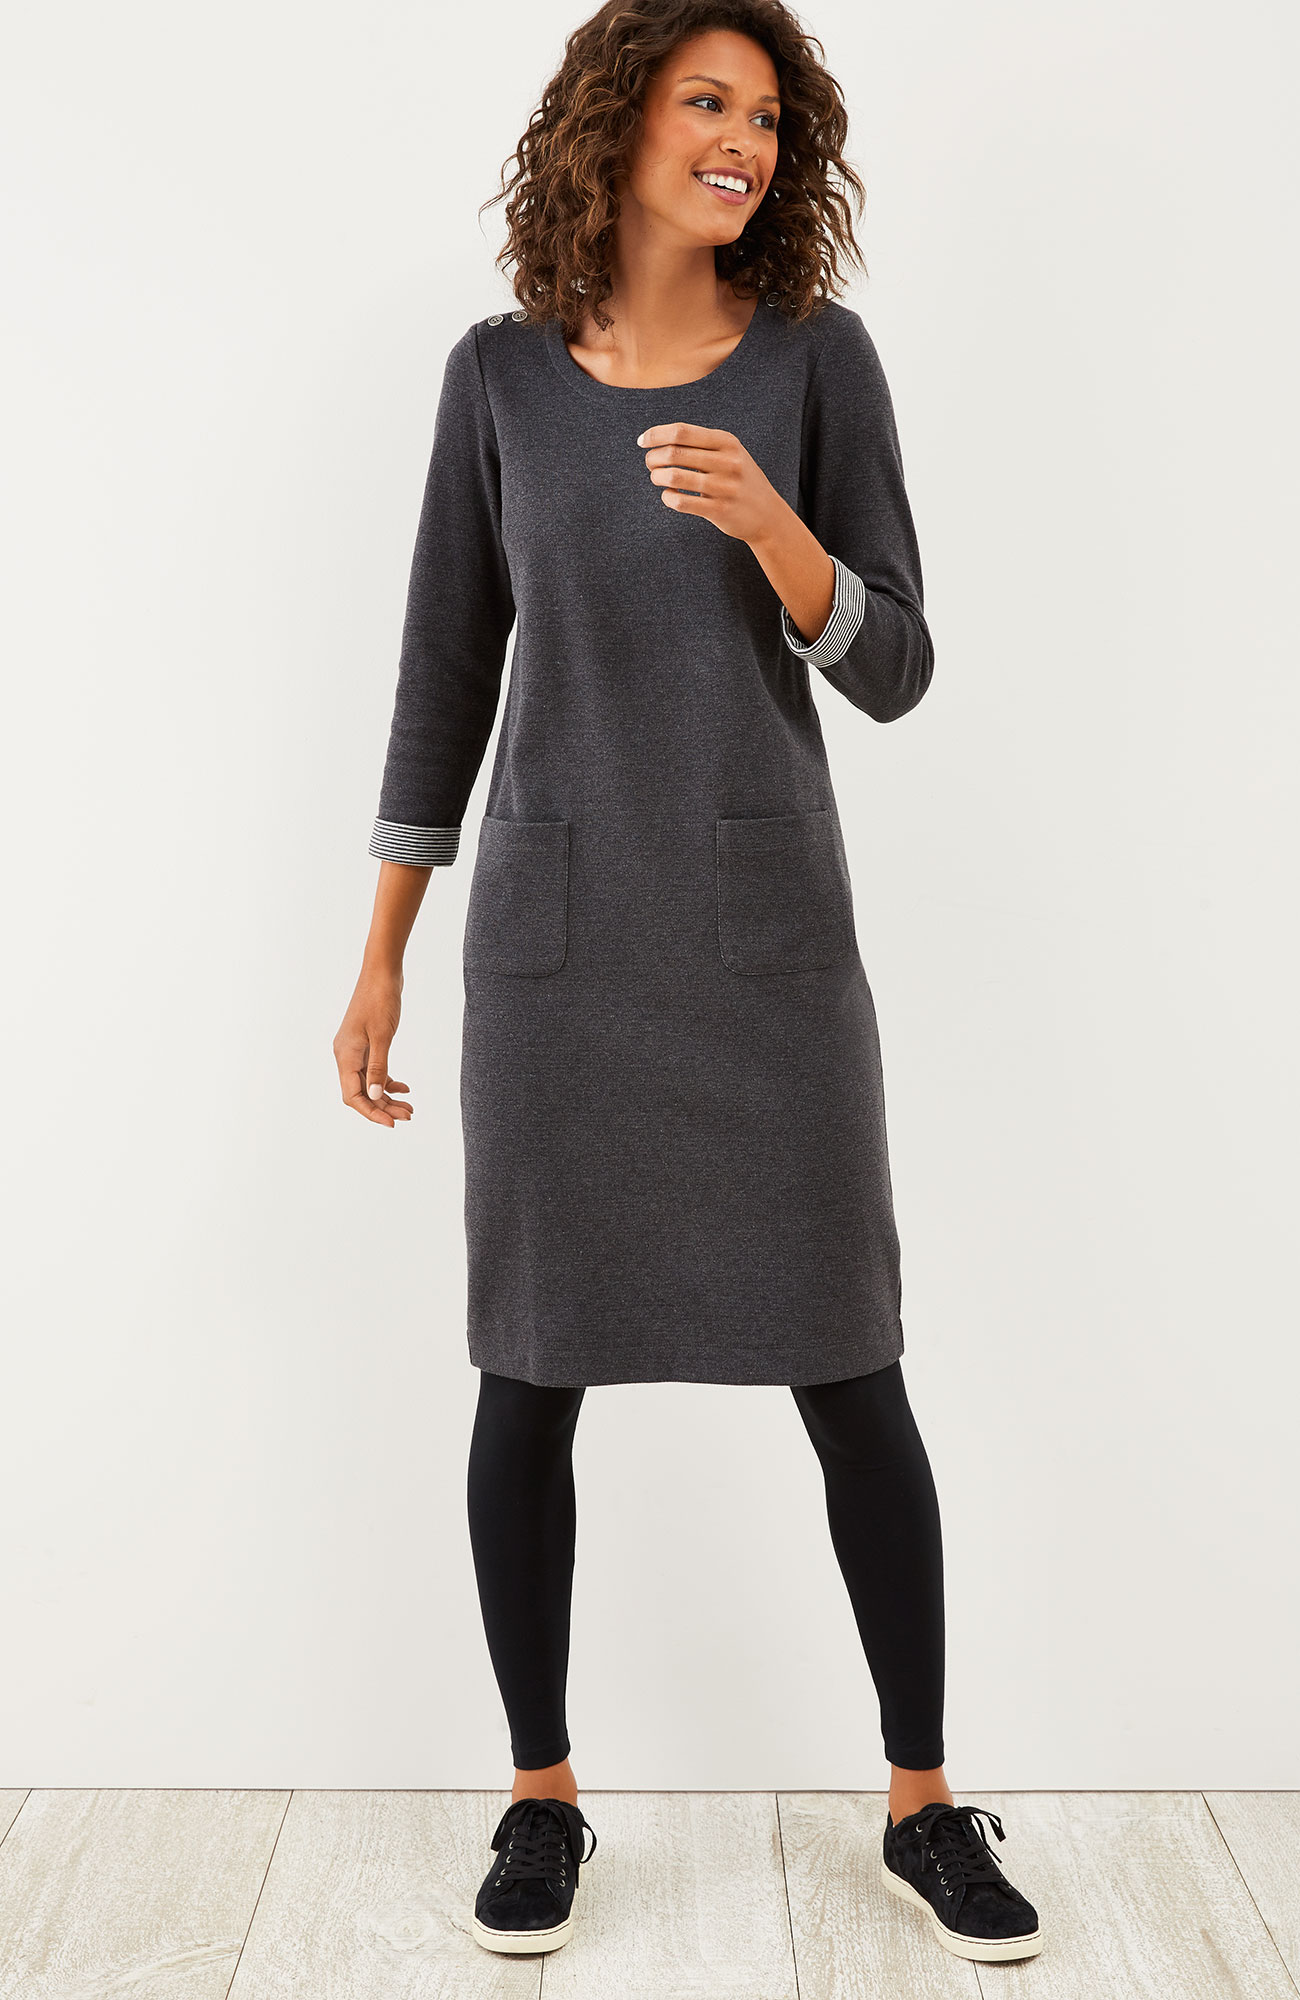 buttoned-shoulder knit dress